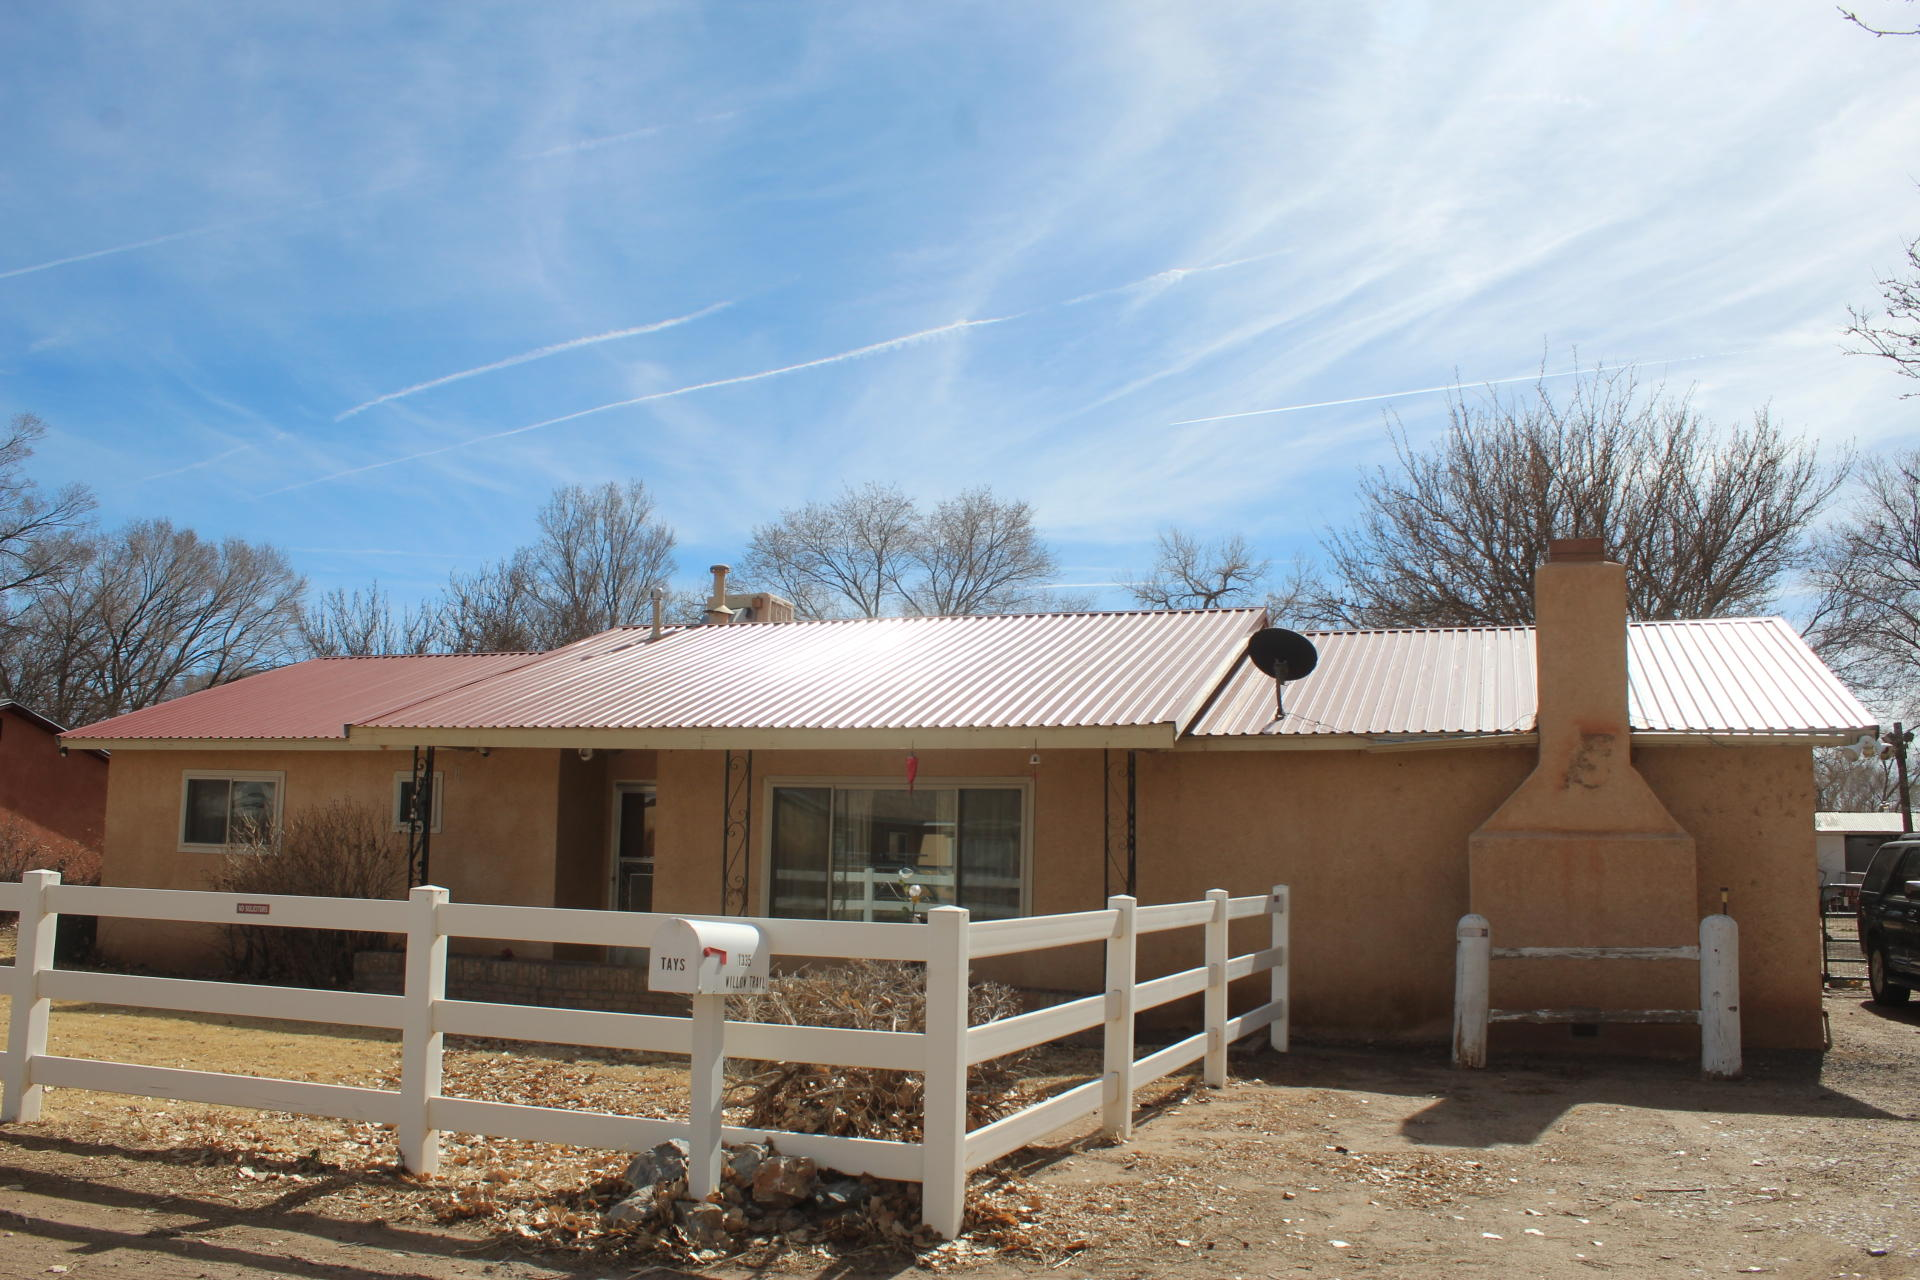 Nestled in quiet neighborhood in the heart of Bosque Farms. Loaded with potential this great family home has 3 bedroom plus an office, den with fireplace. several out building for storage & workshop, RV clean out.There is additional acreage for sale call for details.